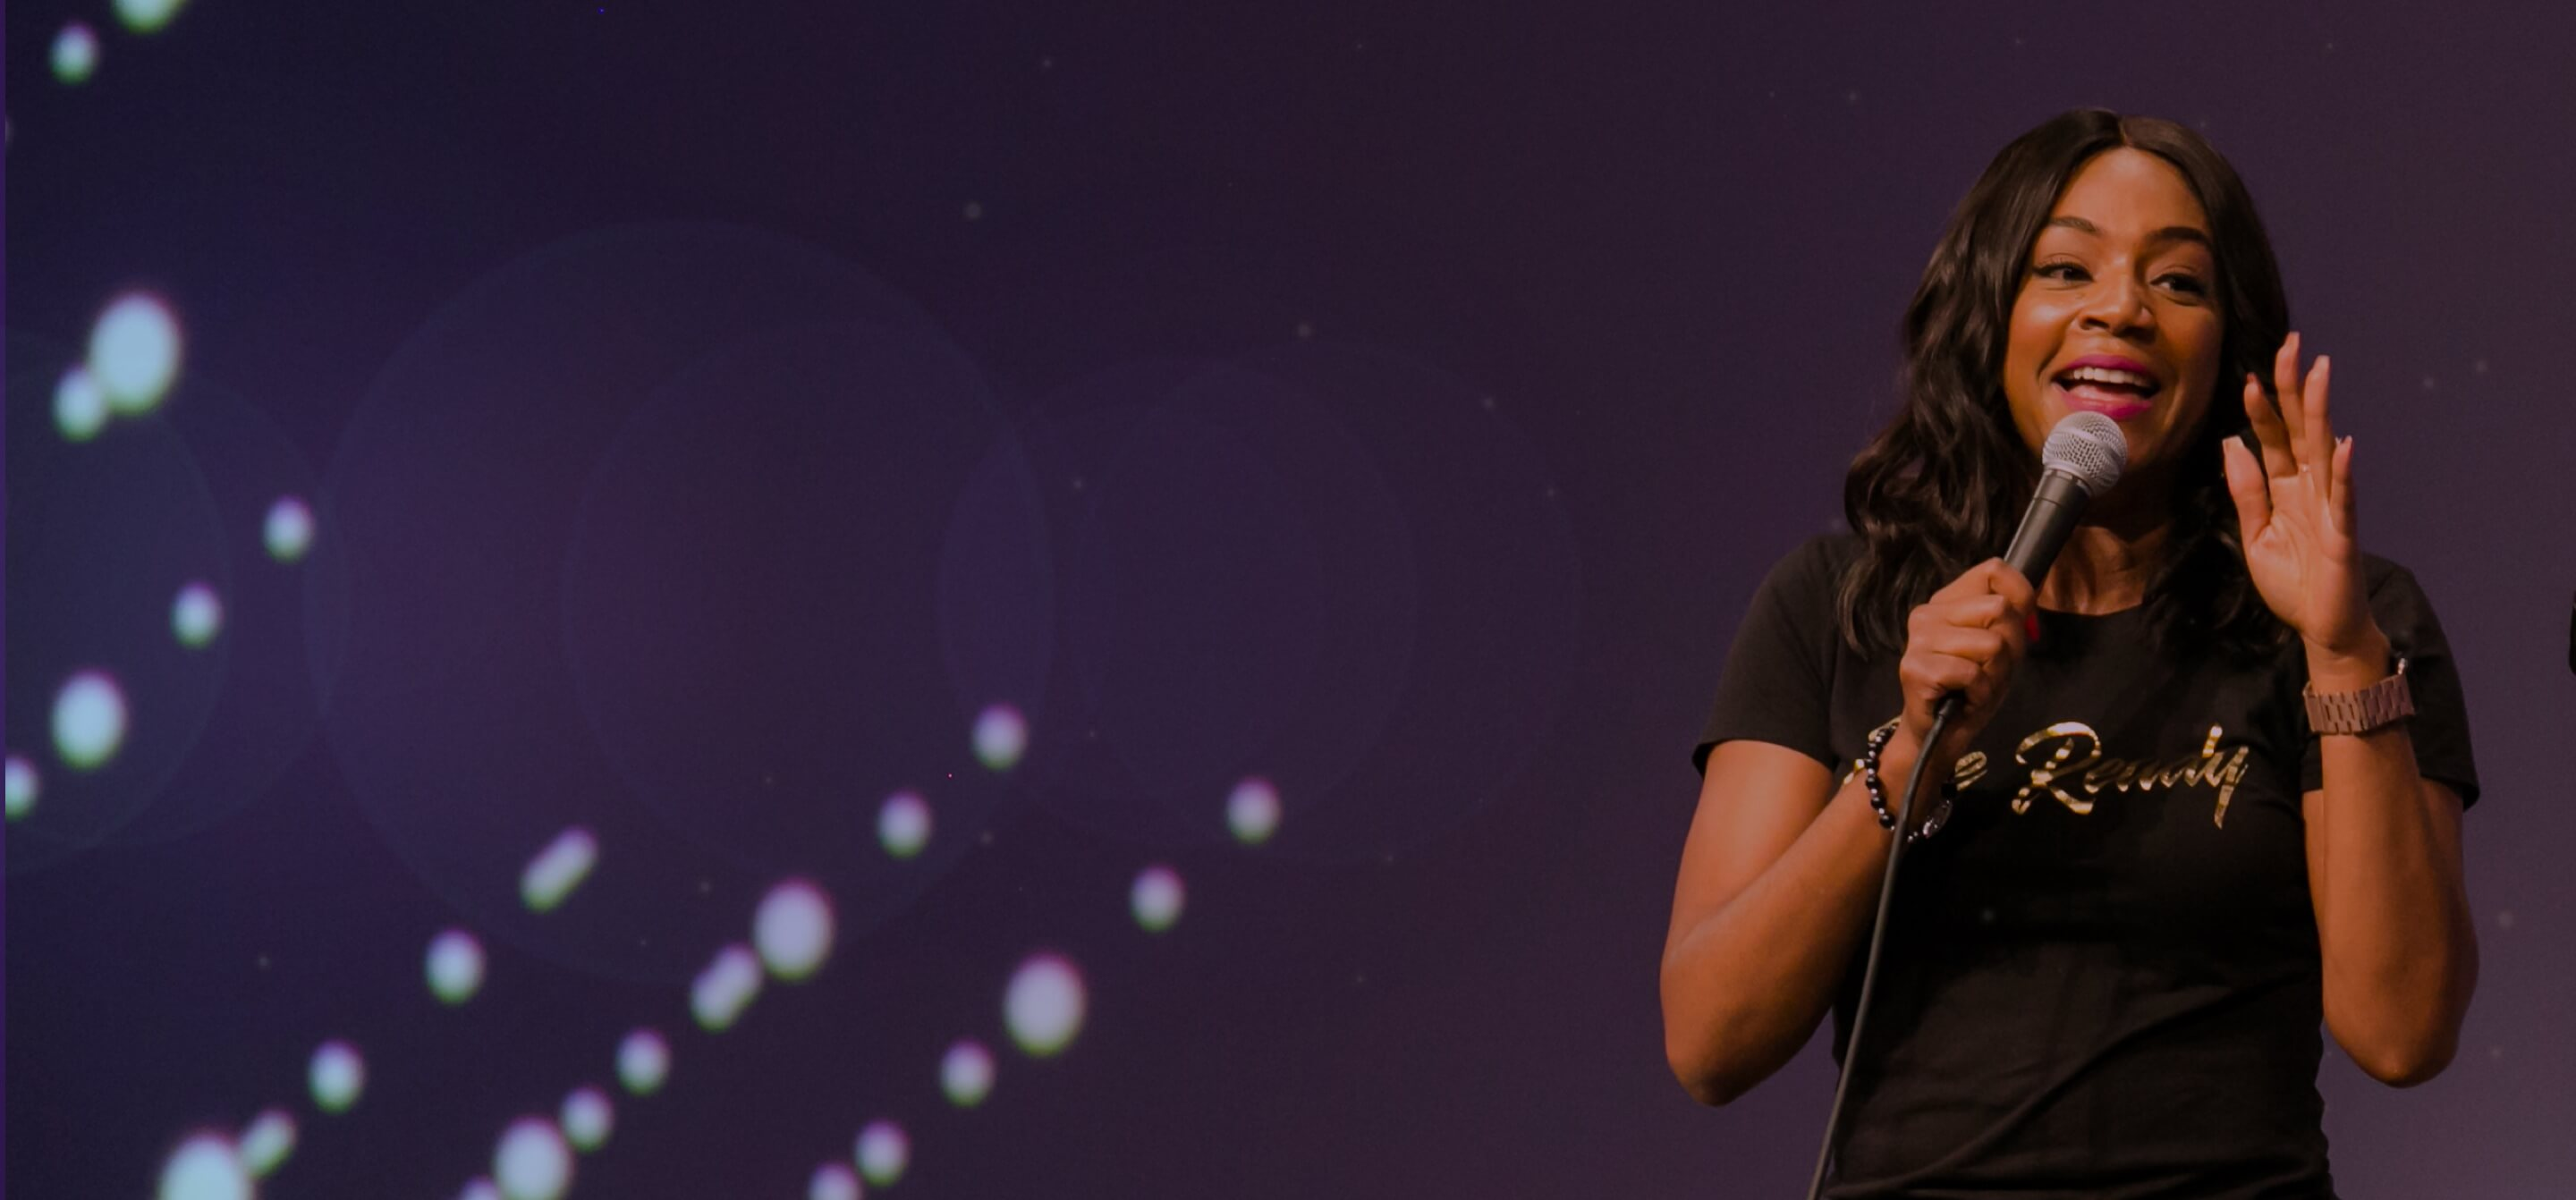 INBOUND 2018 Comedian Tiffany Haddish performing at INBOUND Rocks event